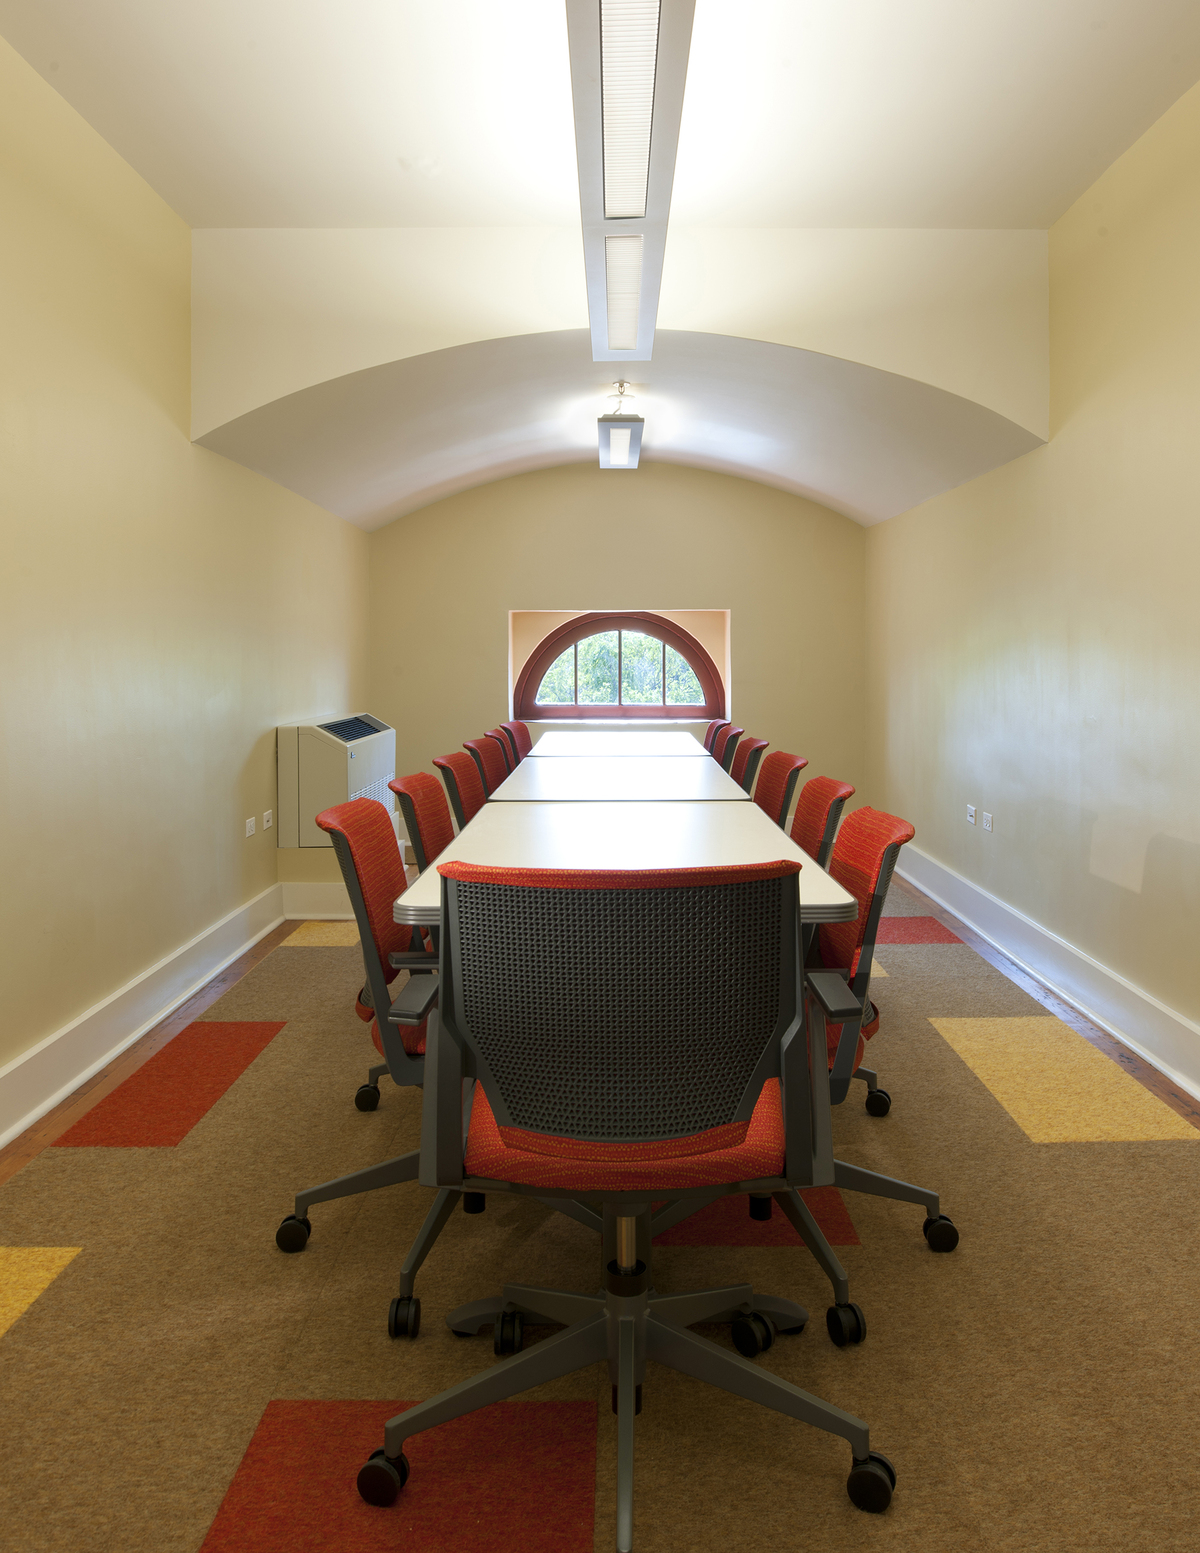 Conference Room at top level